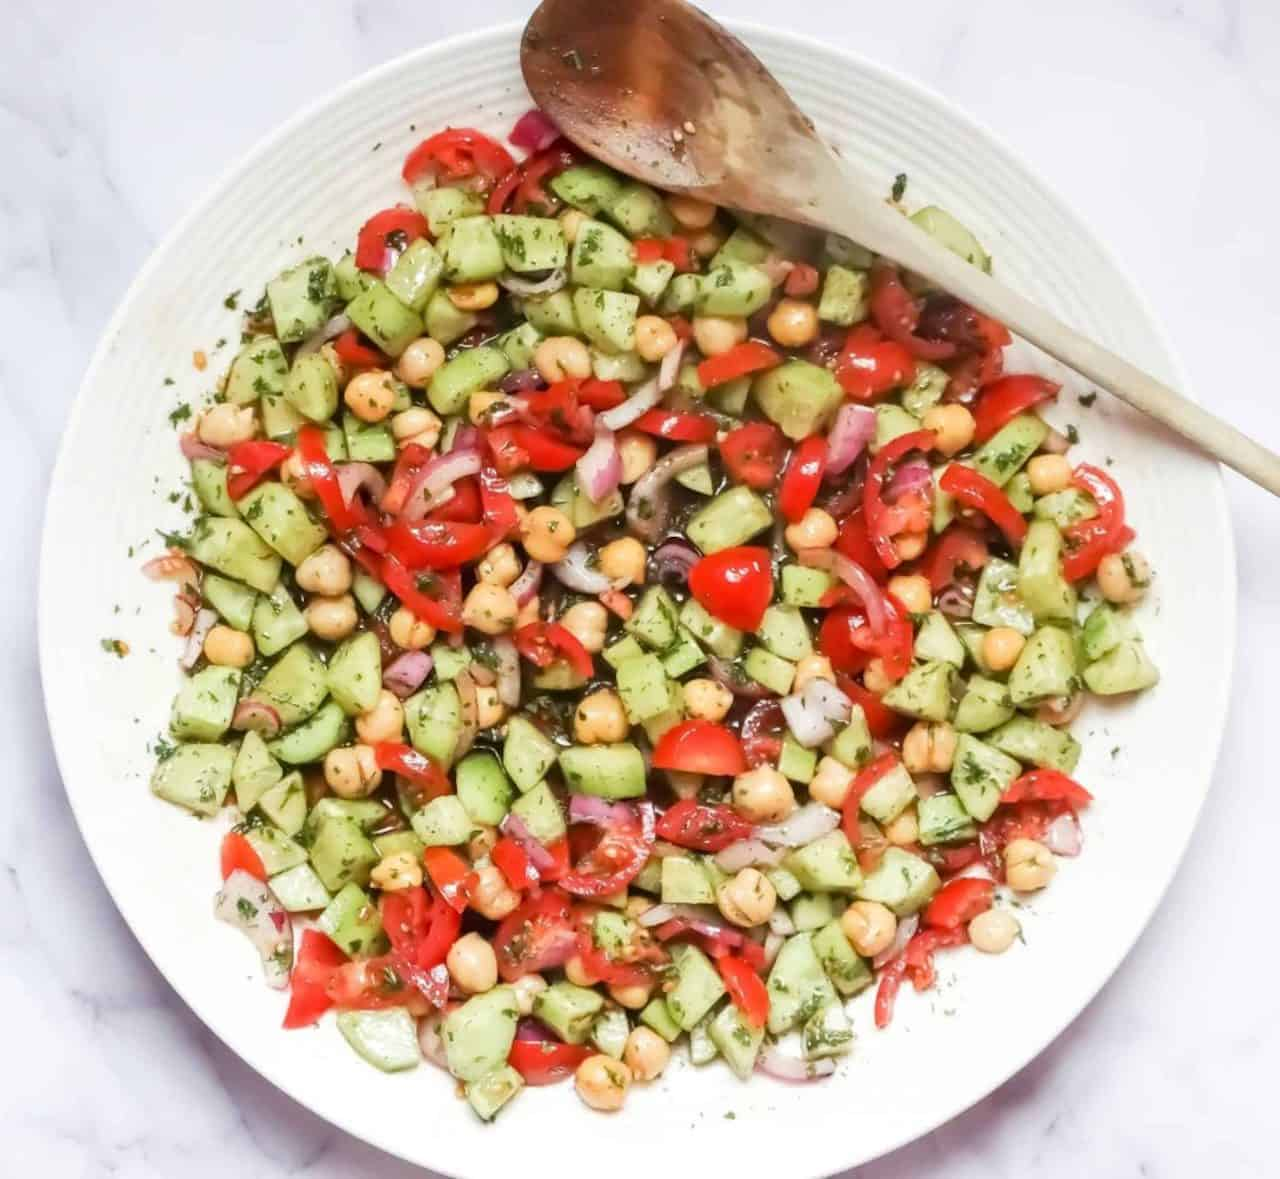 cucumber tomato salad with dill and parsley dressing in a white bowl